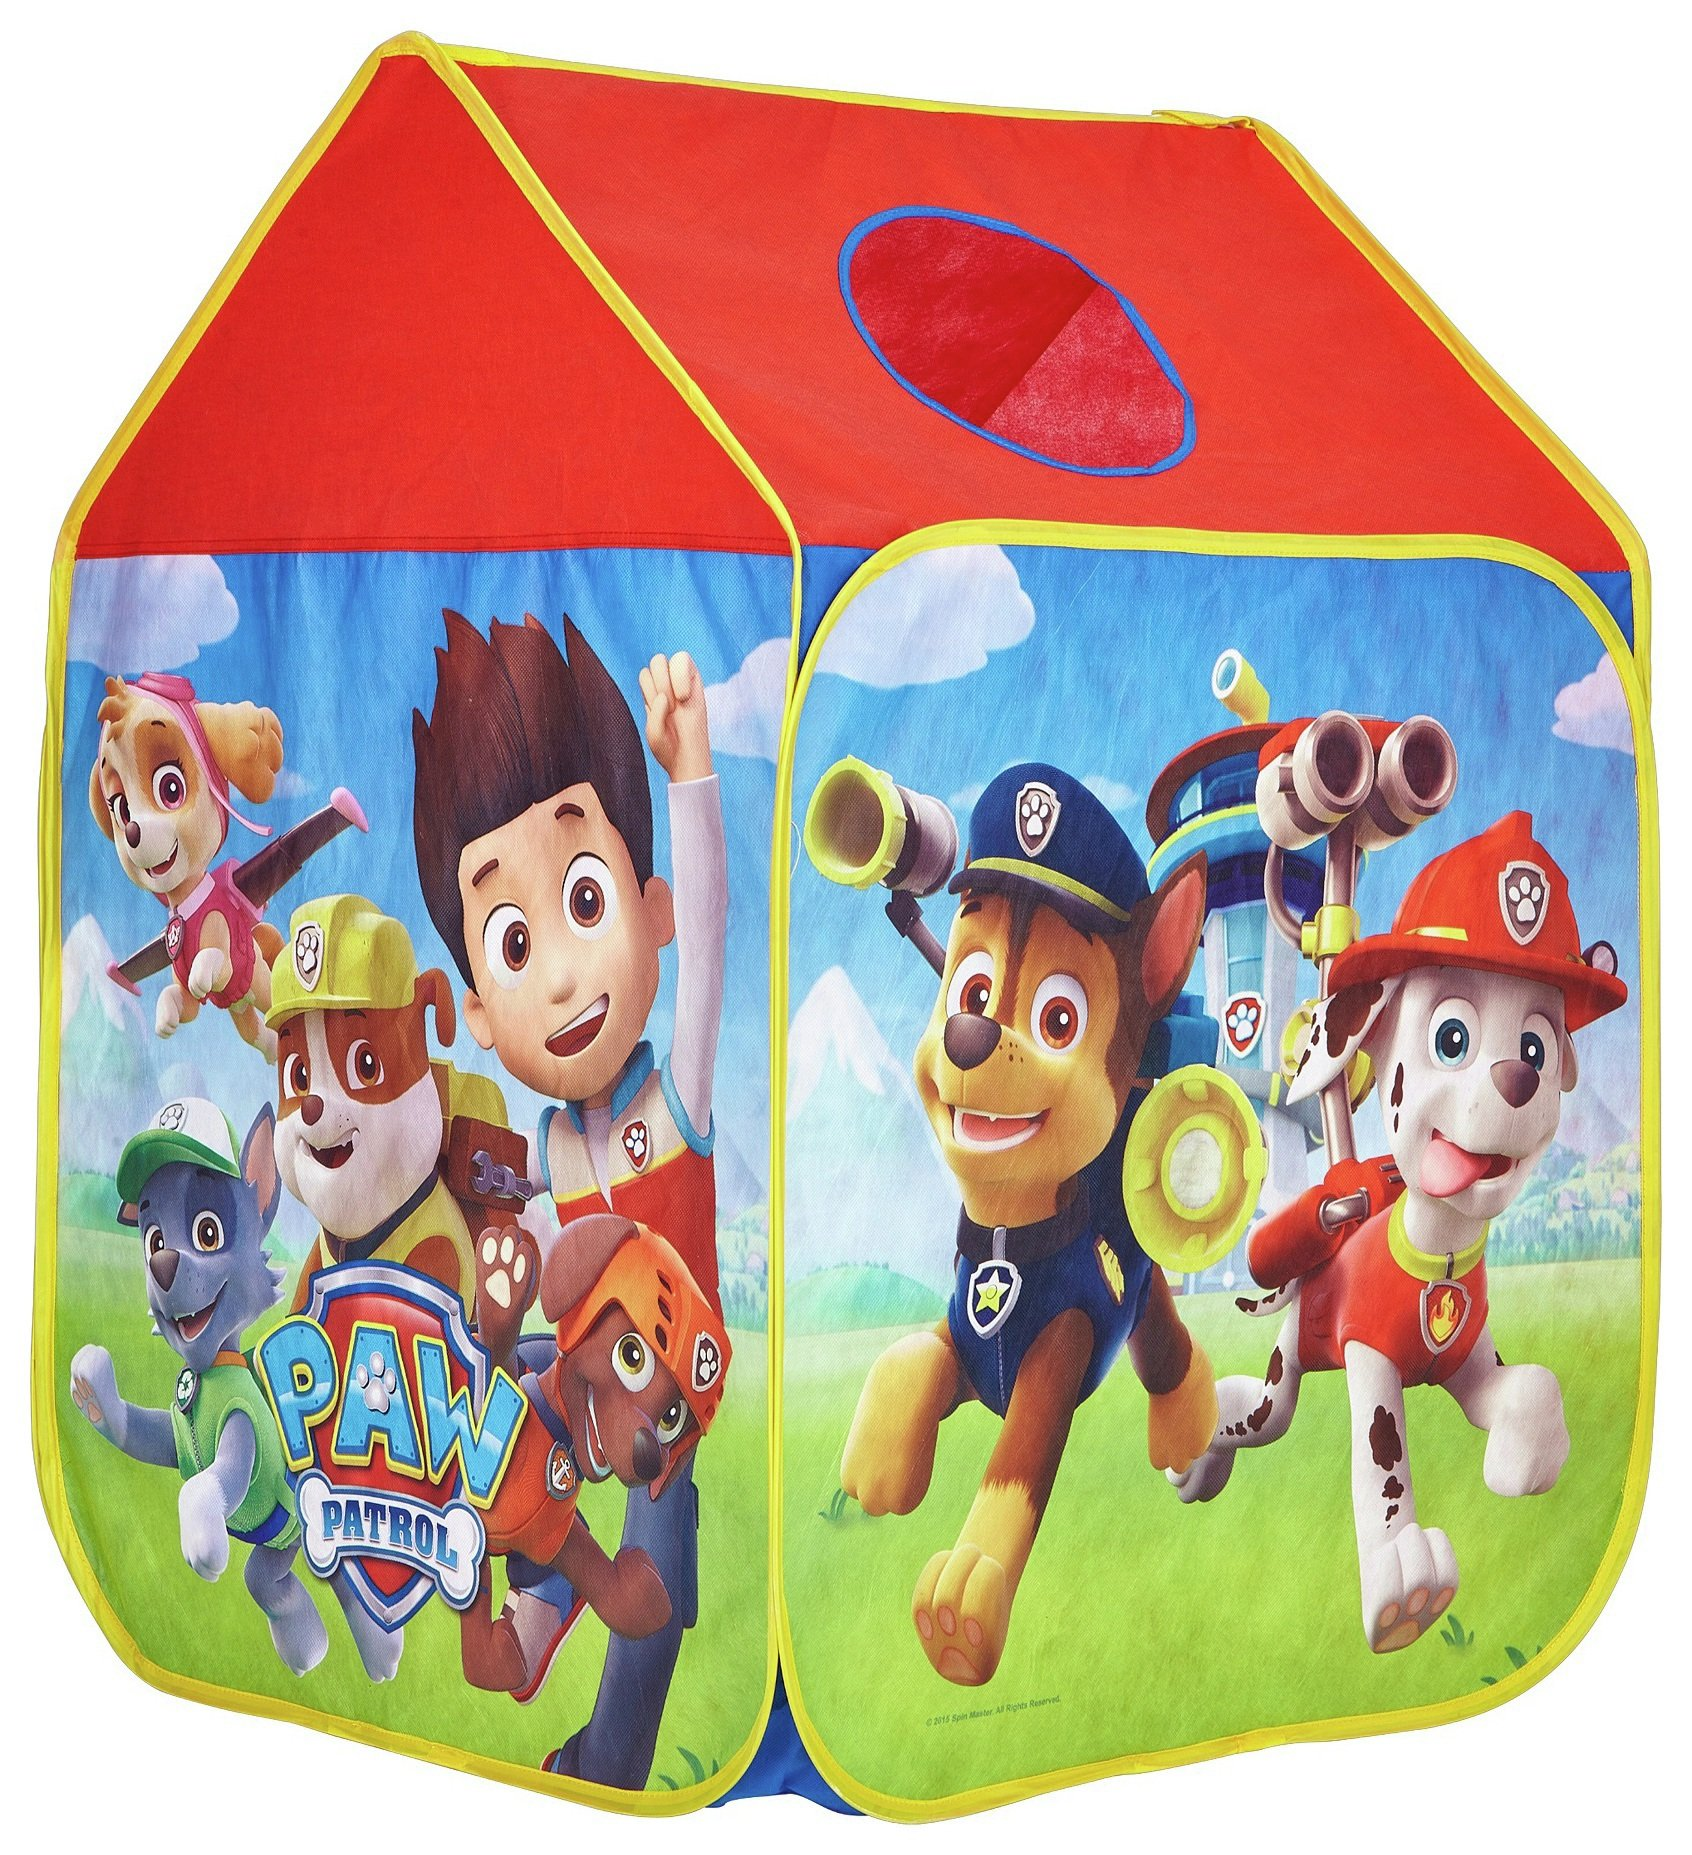 PAW Patrol Wendy House Play Tent. from Paw patrol